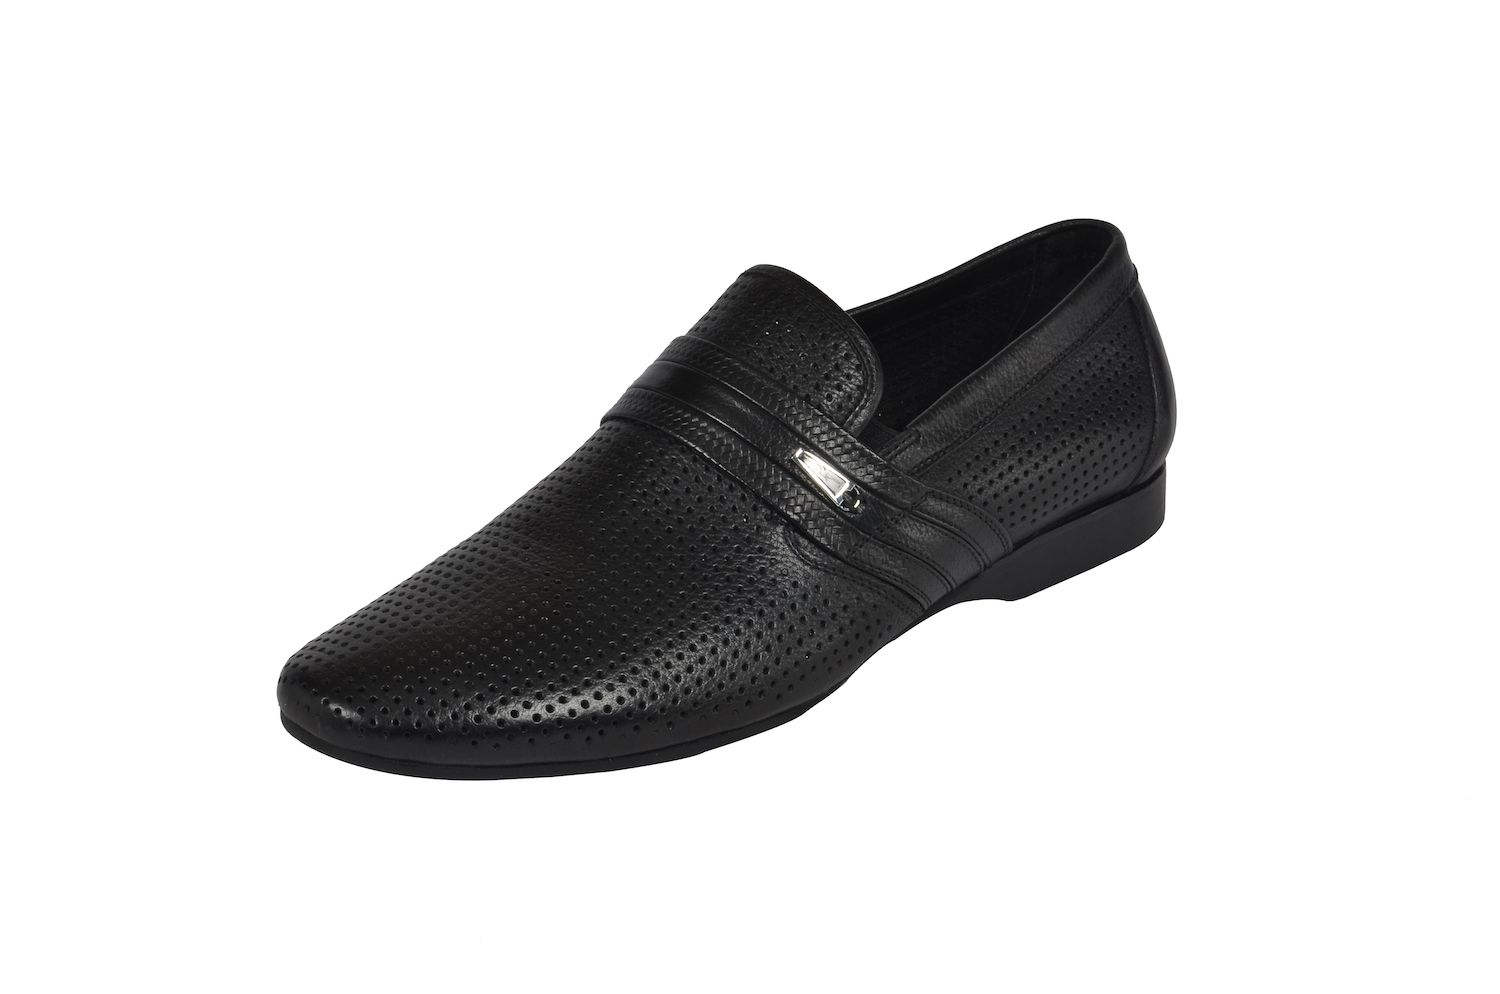 Black Slip-On Casual Shoes